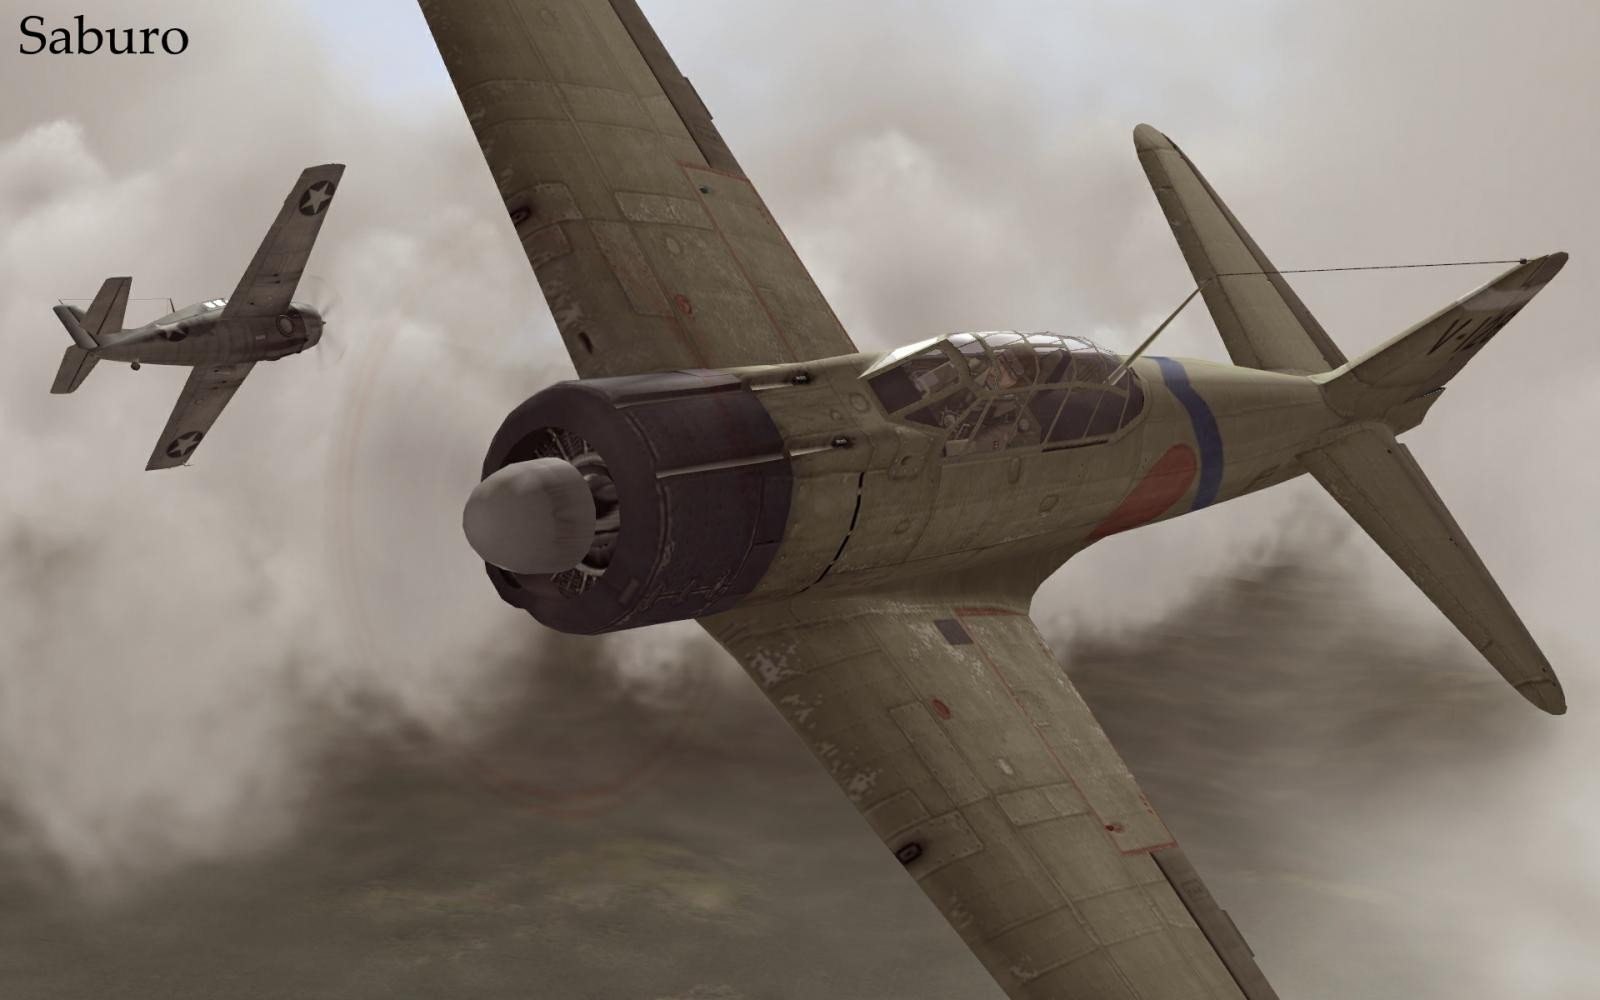 Long day over Guadalcanal